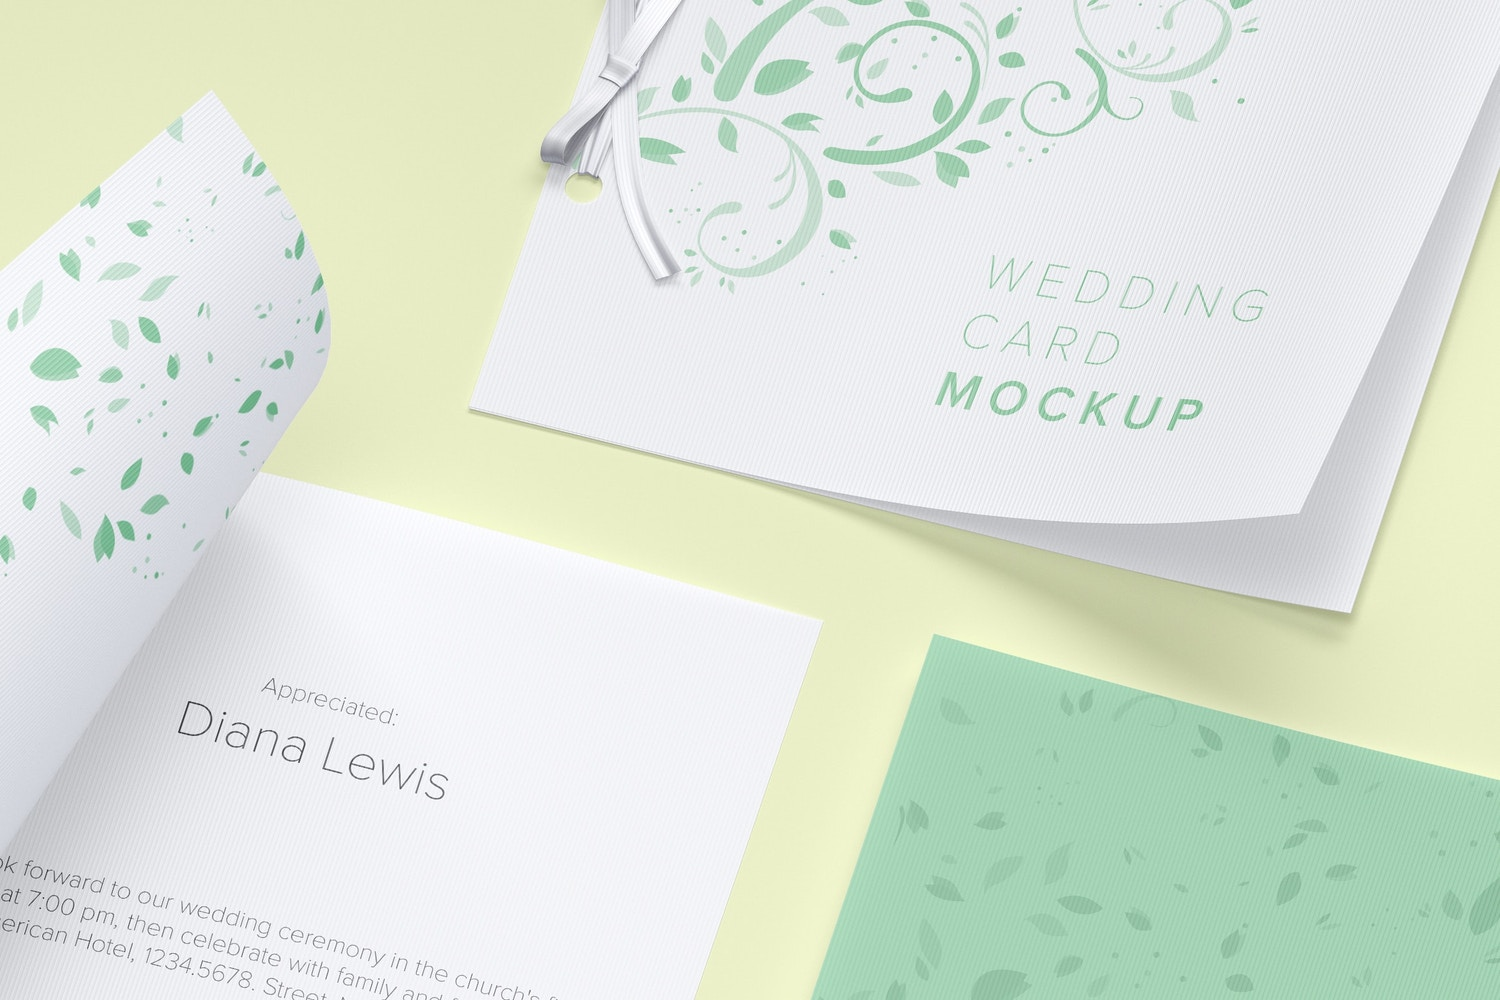 Wedding Card Mockup, Covers and Inner Pages (3) by Original Mockups on Original Mockups